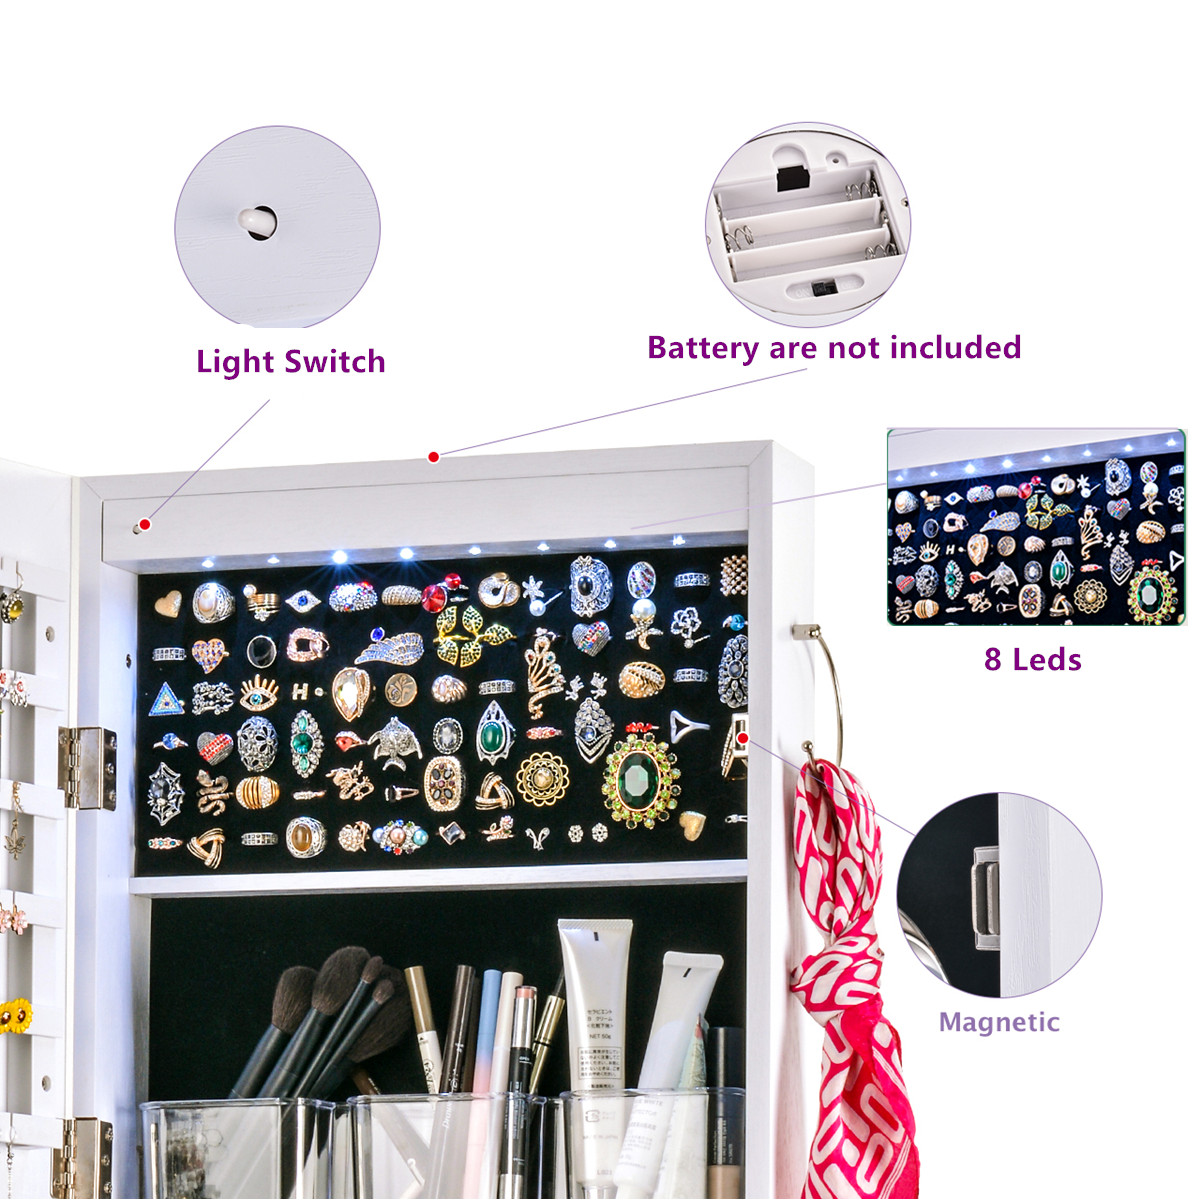 Multifunctional LED Jewelry Mirror Cabinet Wall Door Mounted Jewelry Cabinet Lockable Armoire Organizer Dresser Mirror with LED 4